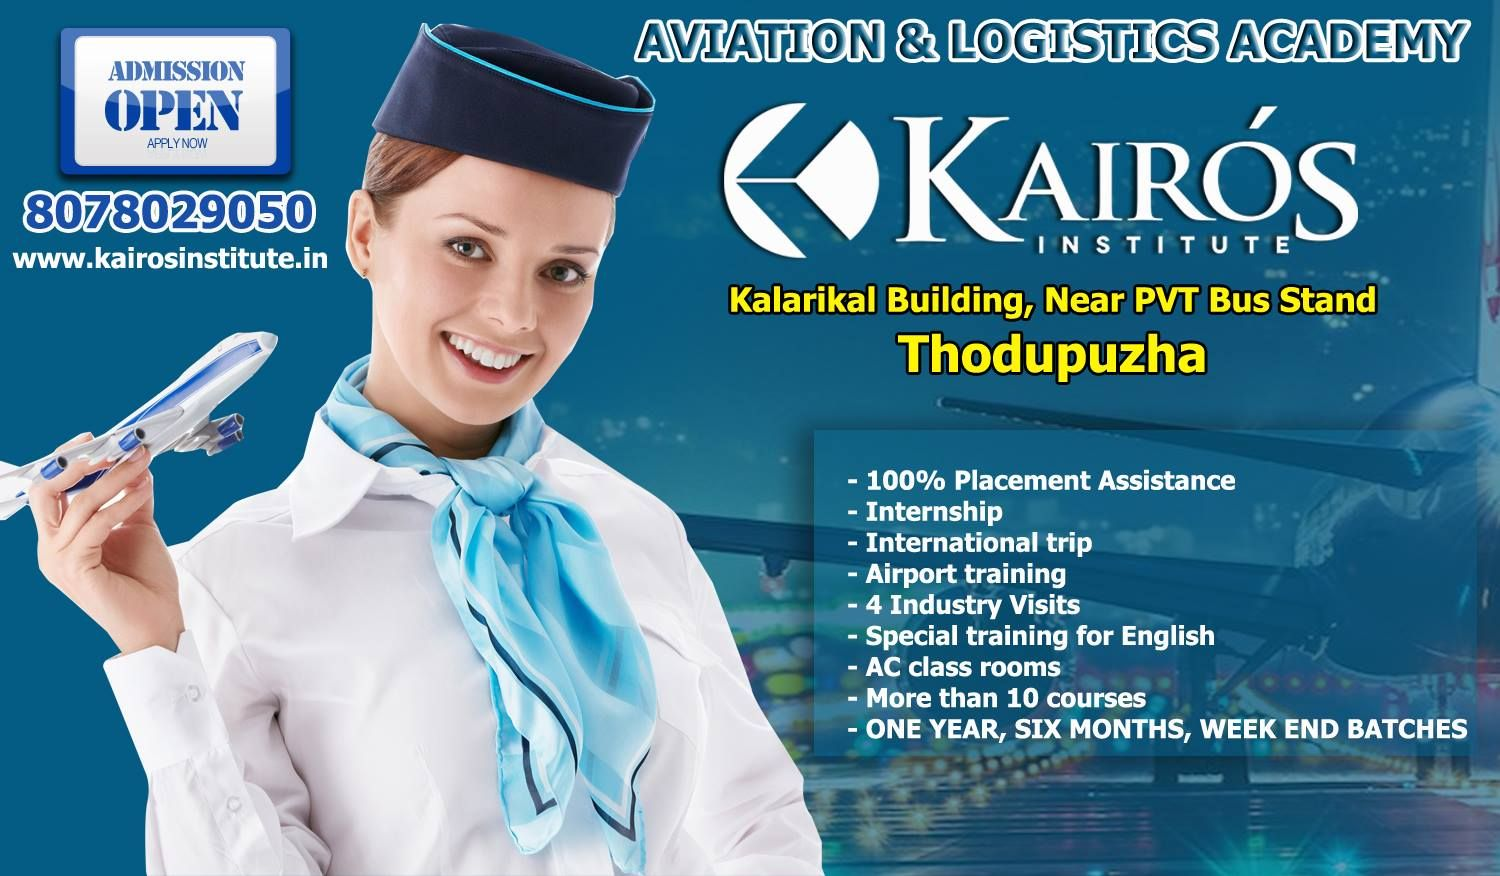 Top Aviation Tourism and Logistics Academy in